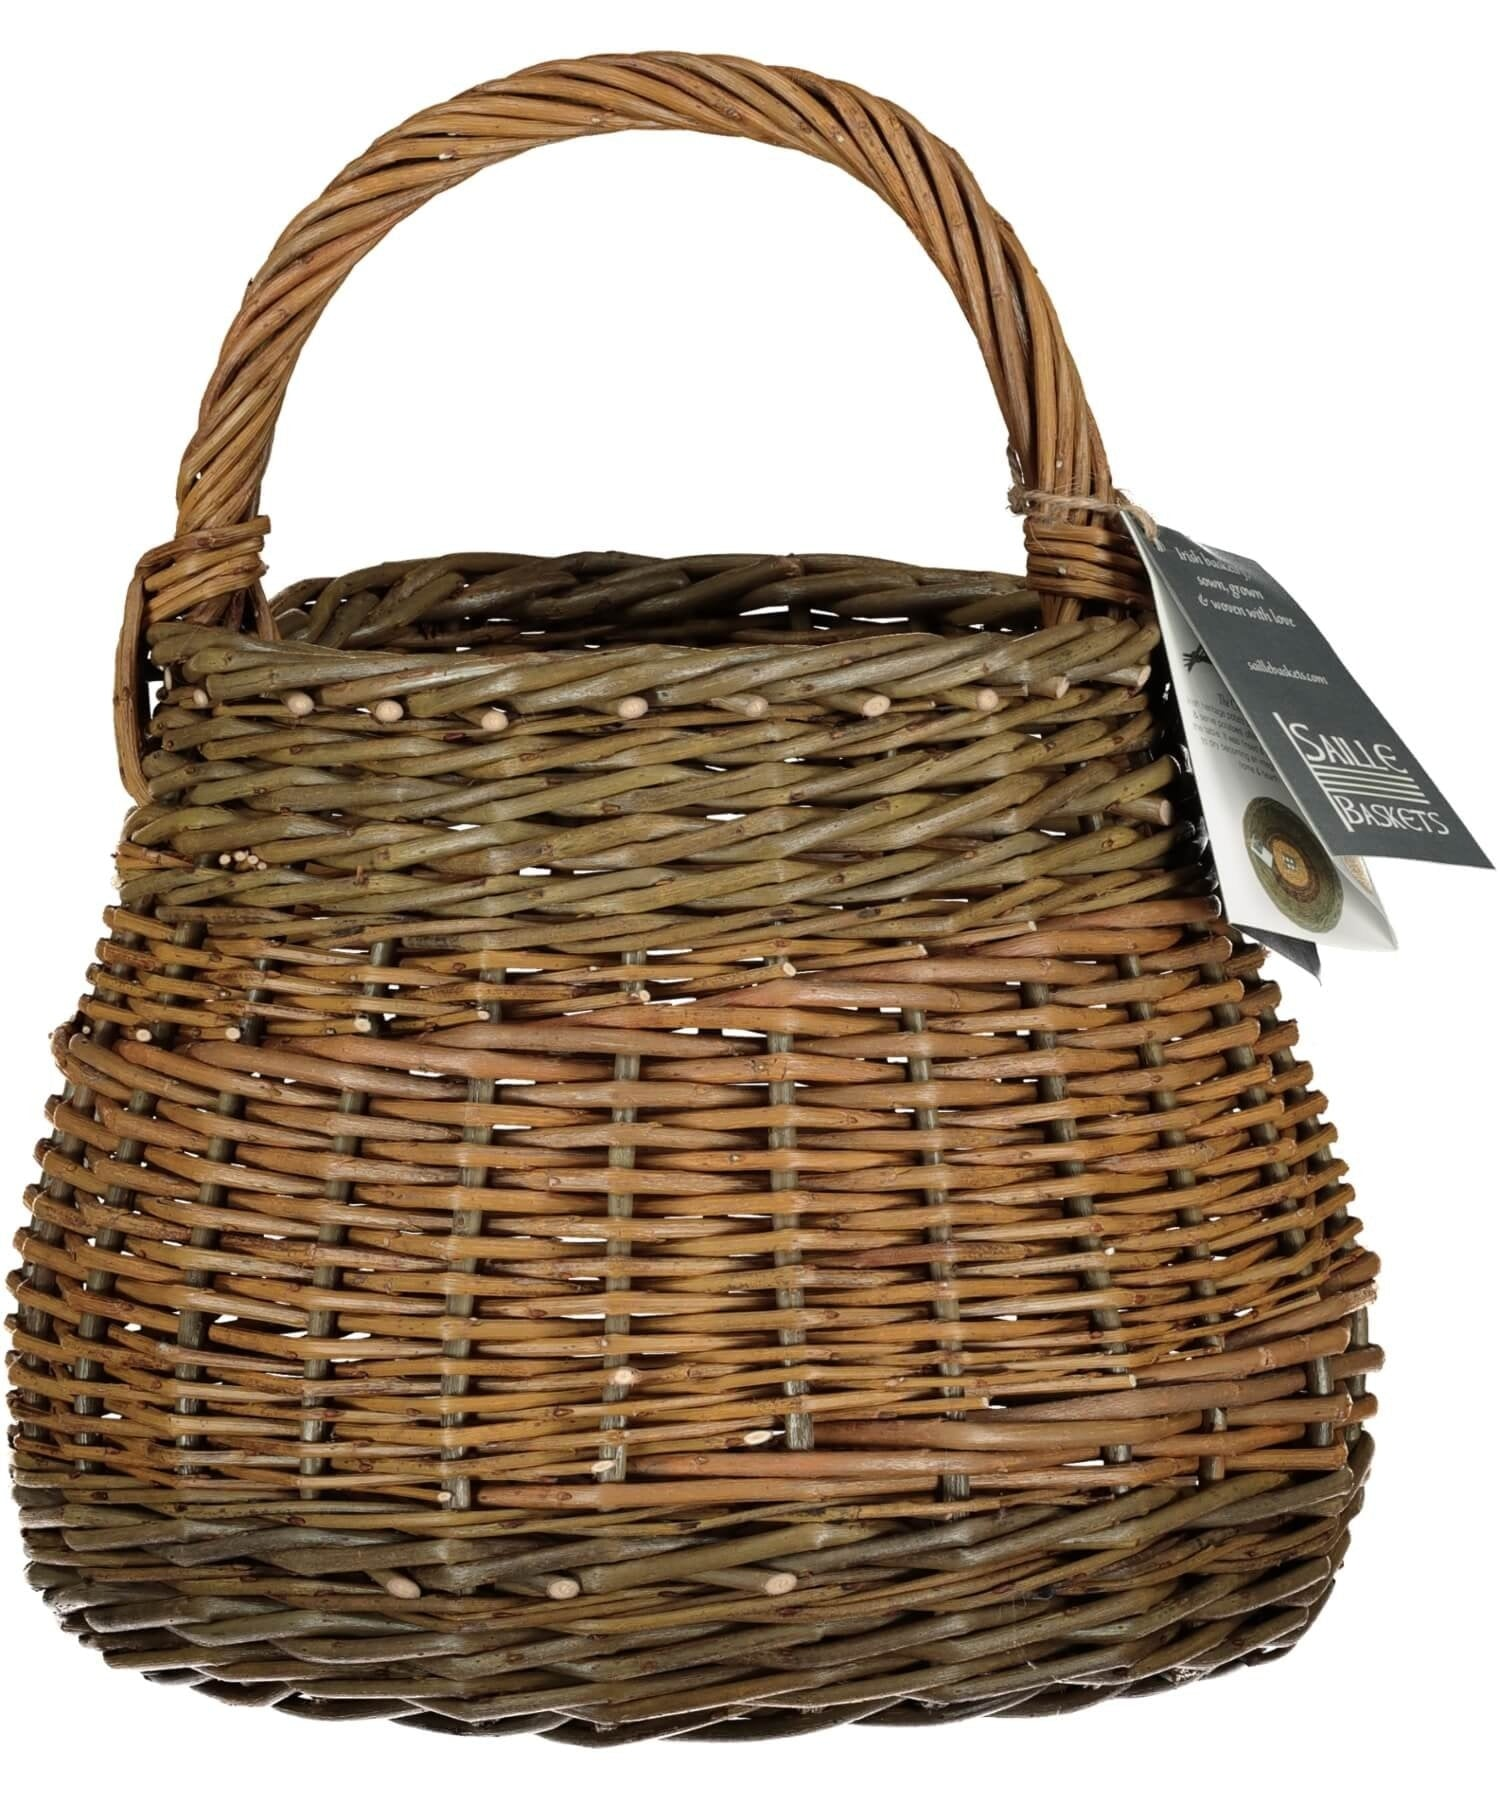 Aran Isle Kisheen - [Saille Baskets] - Wood & Slate - Irish Gifts